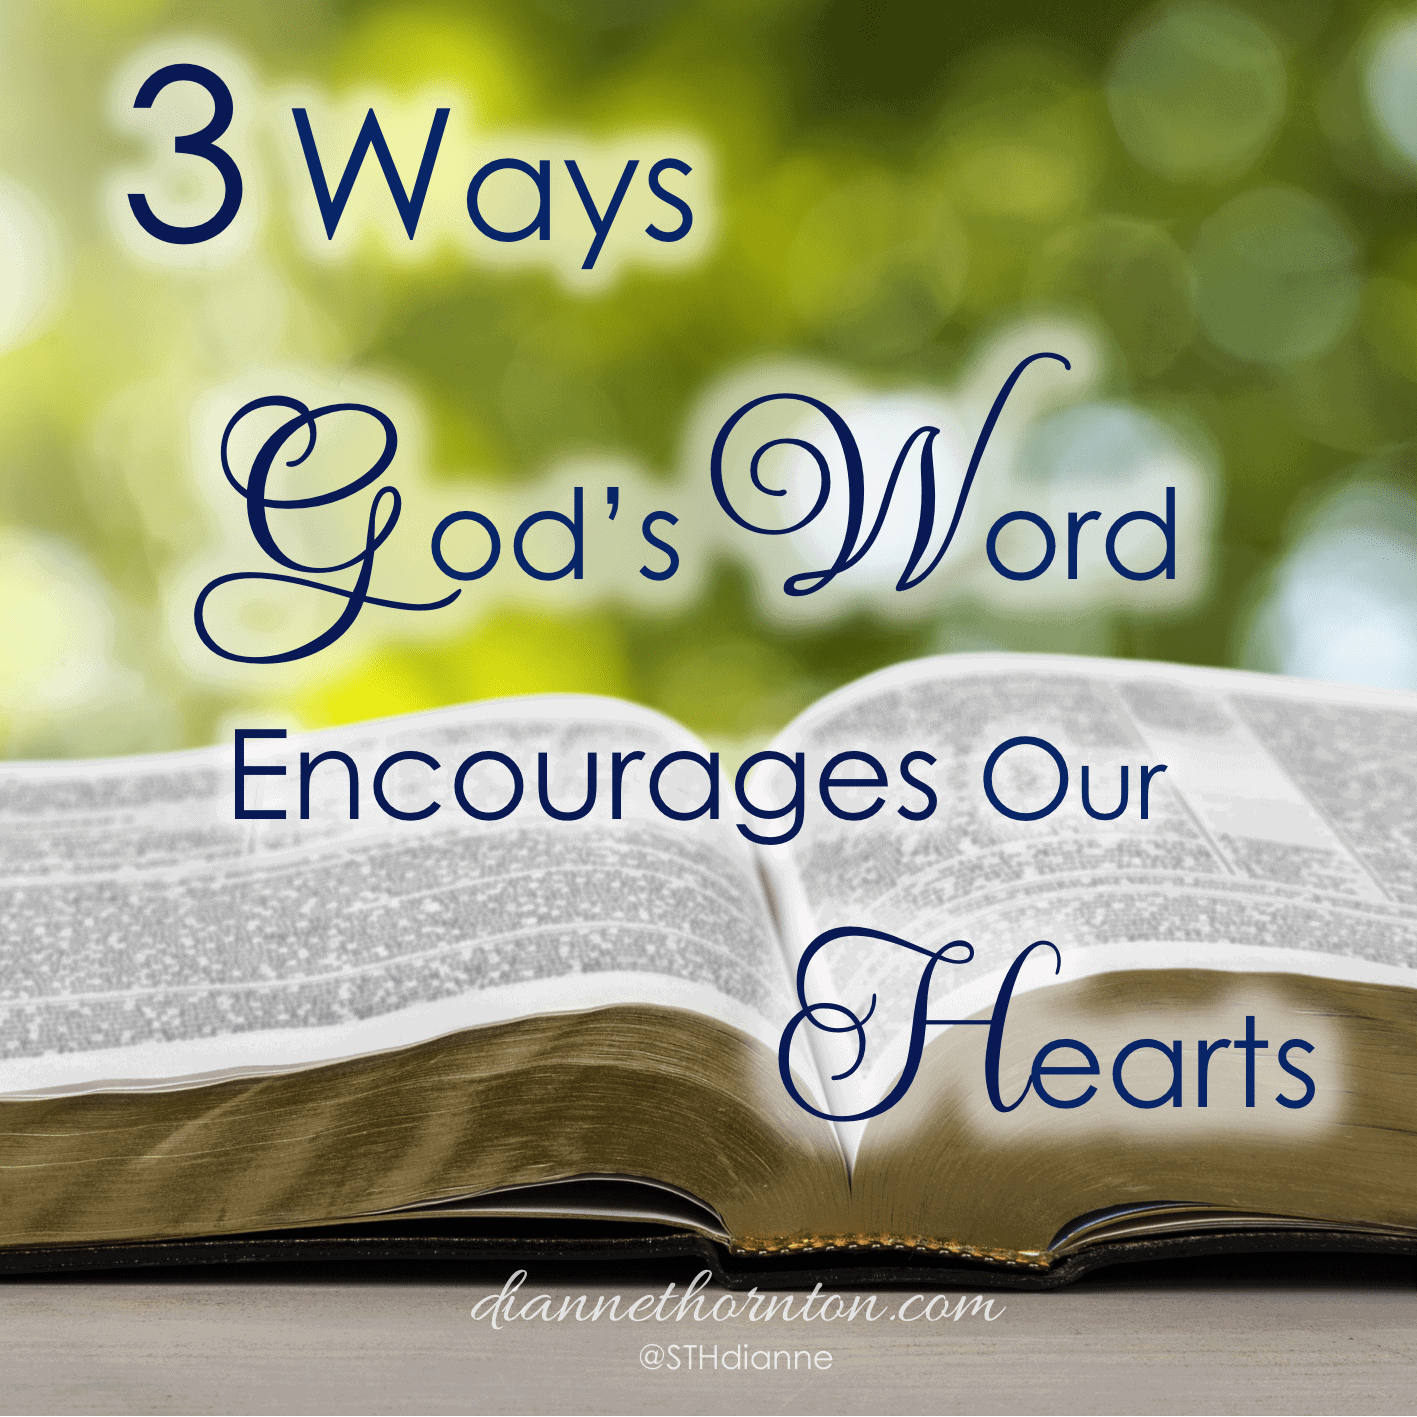 When we are frustrated and disappointed, when our hearts are weary, when we need direction, God's Word encourages our hearts with strength, hope, and joy.